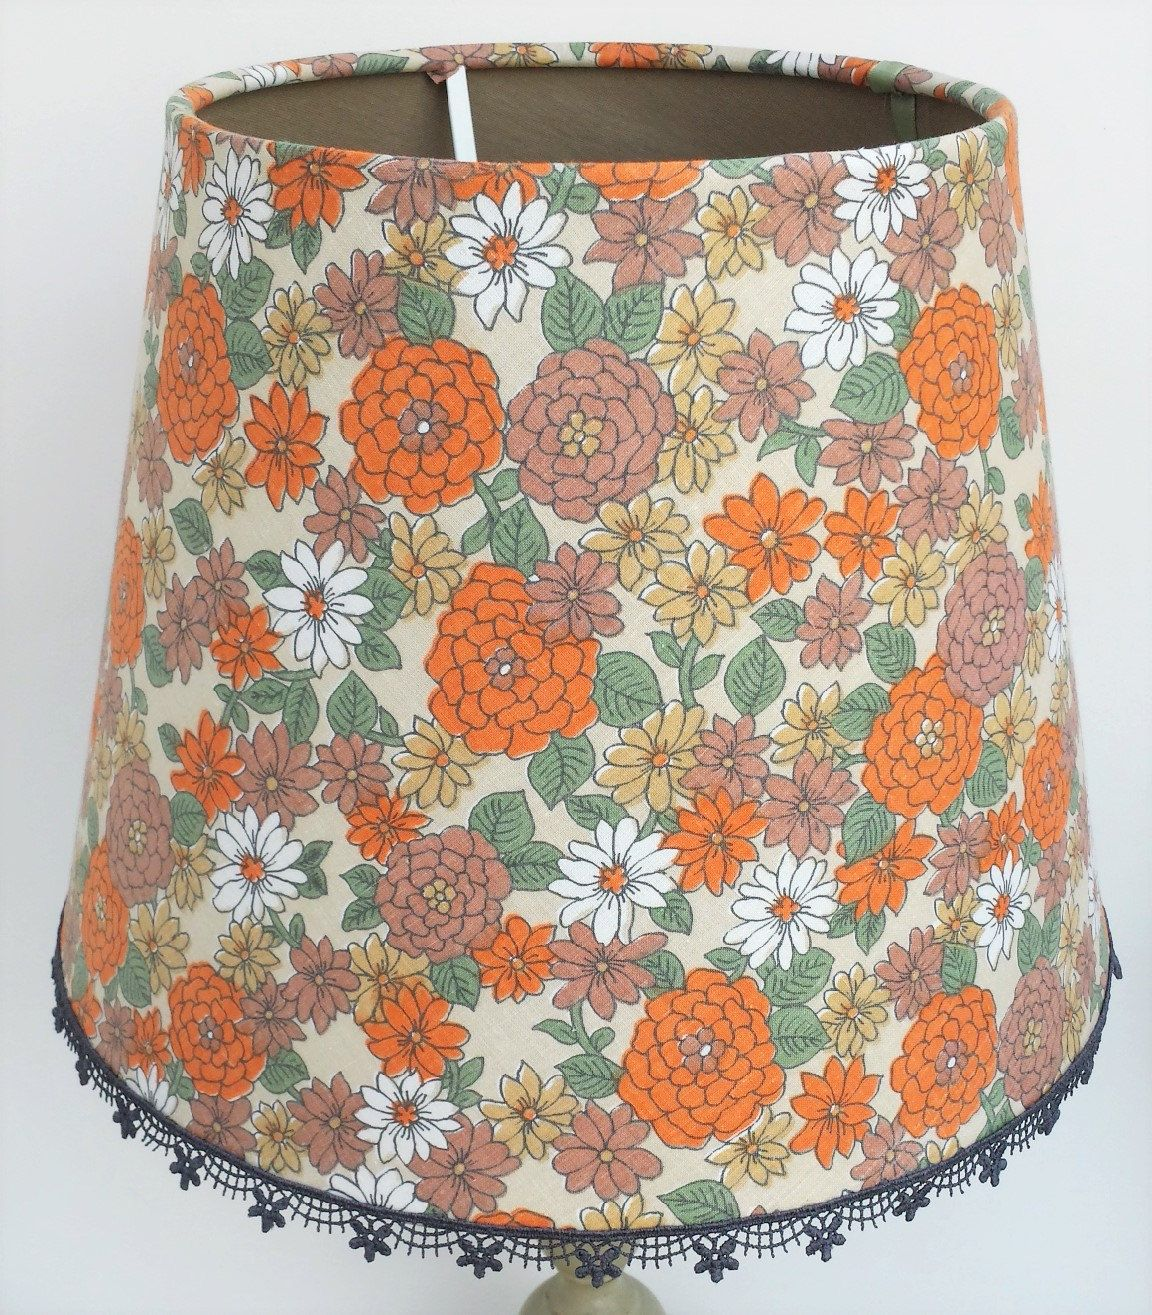 Orange and turquoise lamp shade - Contemporary Lamp Shade Beautiful 70s Style Fabric Lampshade Fabric Lined Upcycled Lighting